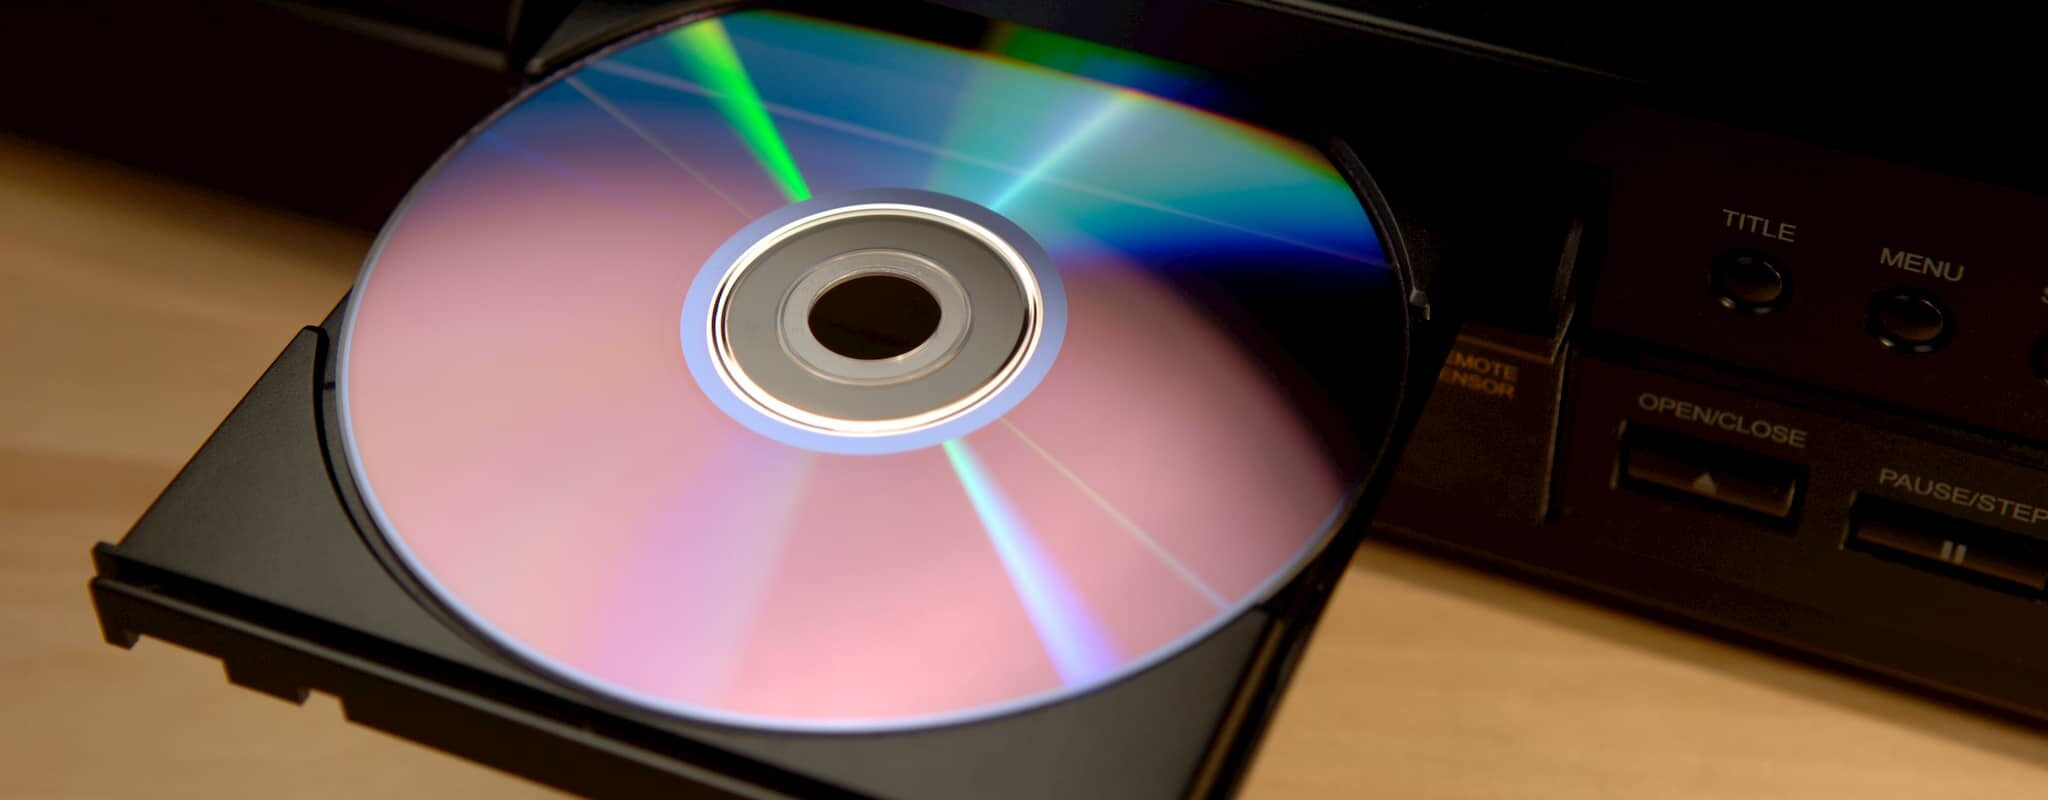 DVD library, one of the great amenities